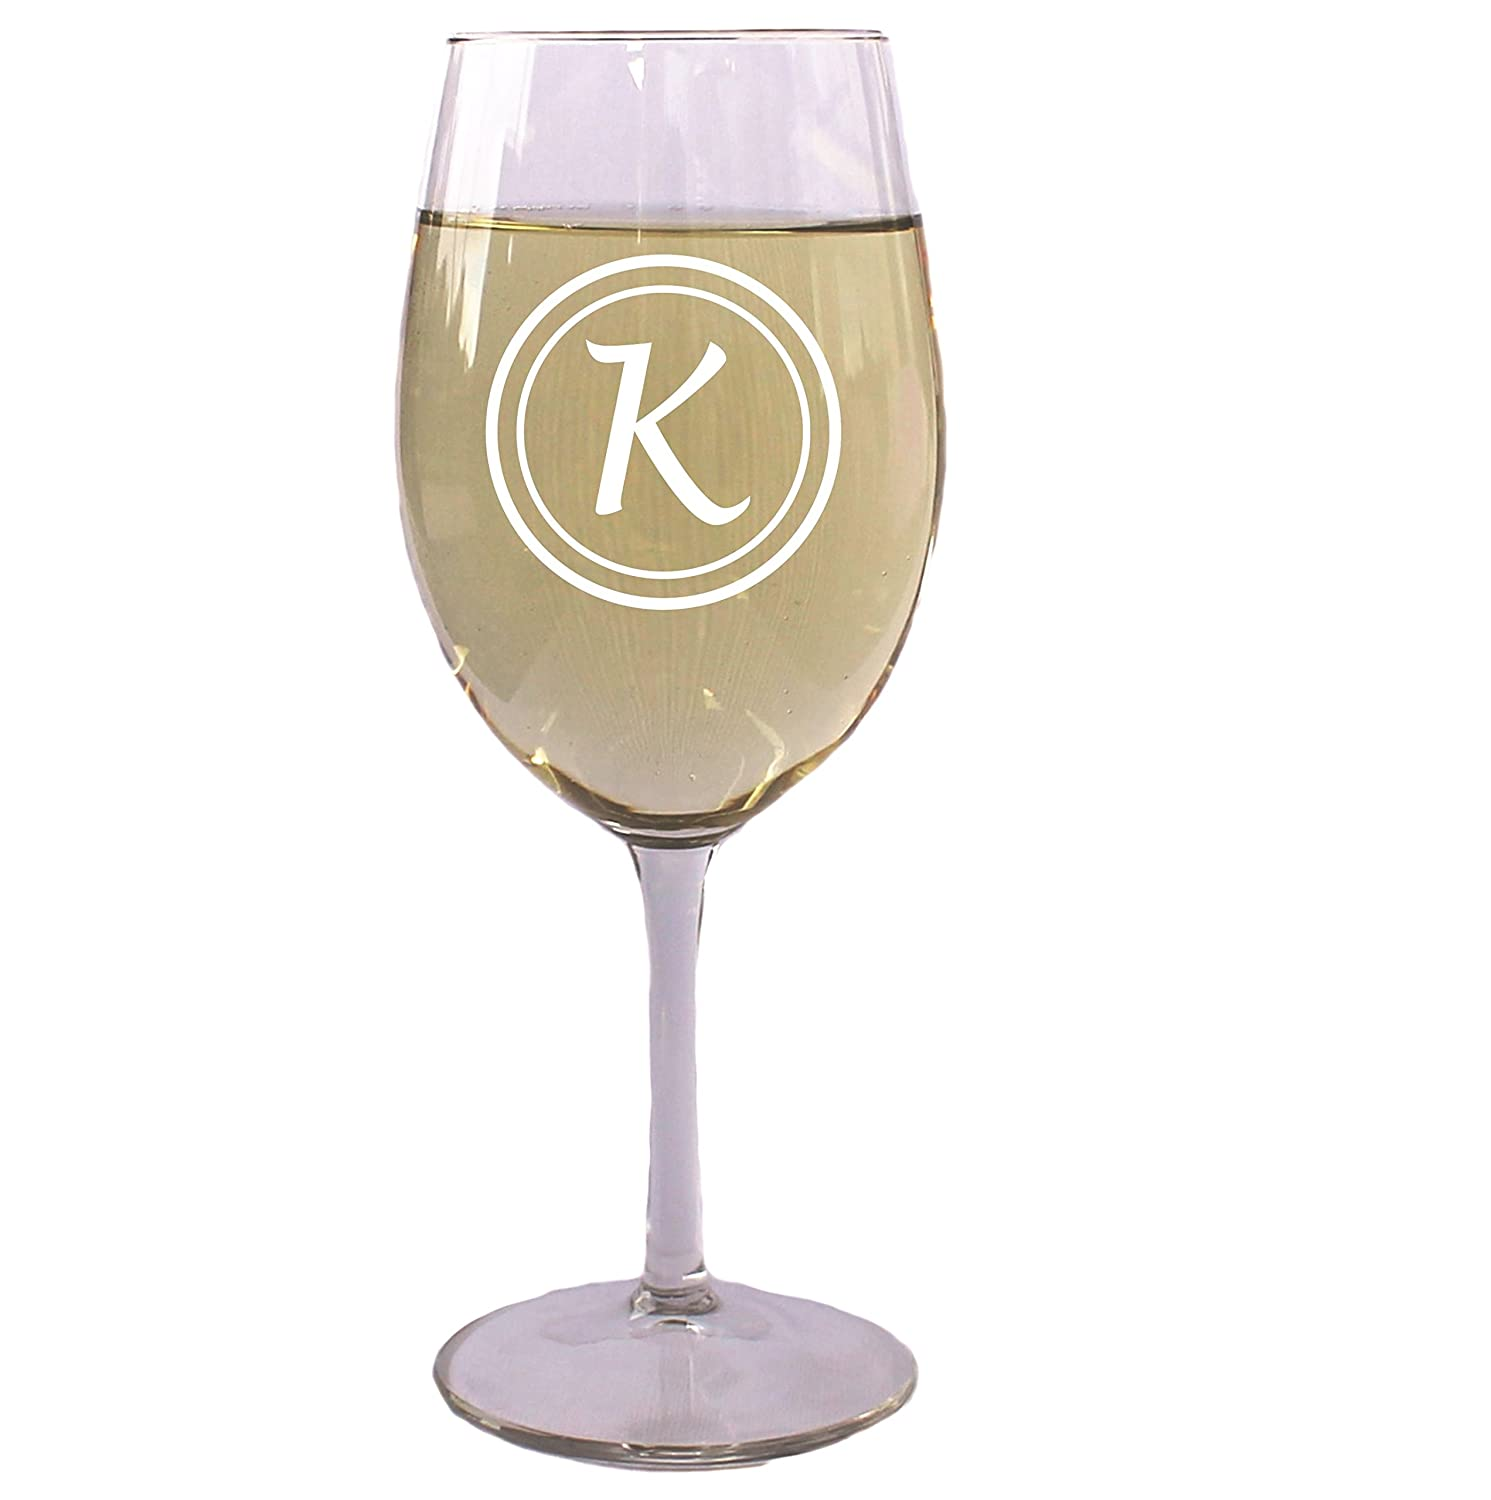 ea5804911ac Personalized White or Red Wine Glass 18 Oz - Wedding Party Bridesmaid  Mother's Day Housewarming Gifts - Custom Engraved Drinkware Glassware  Barware Etched ...